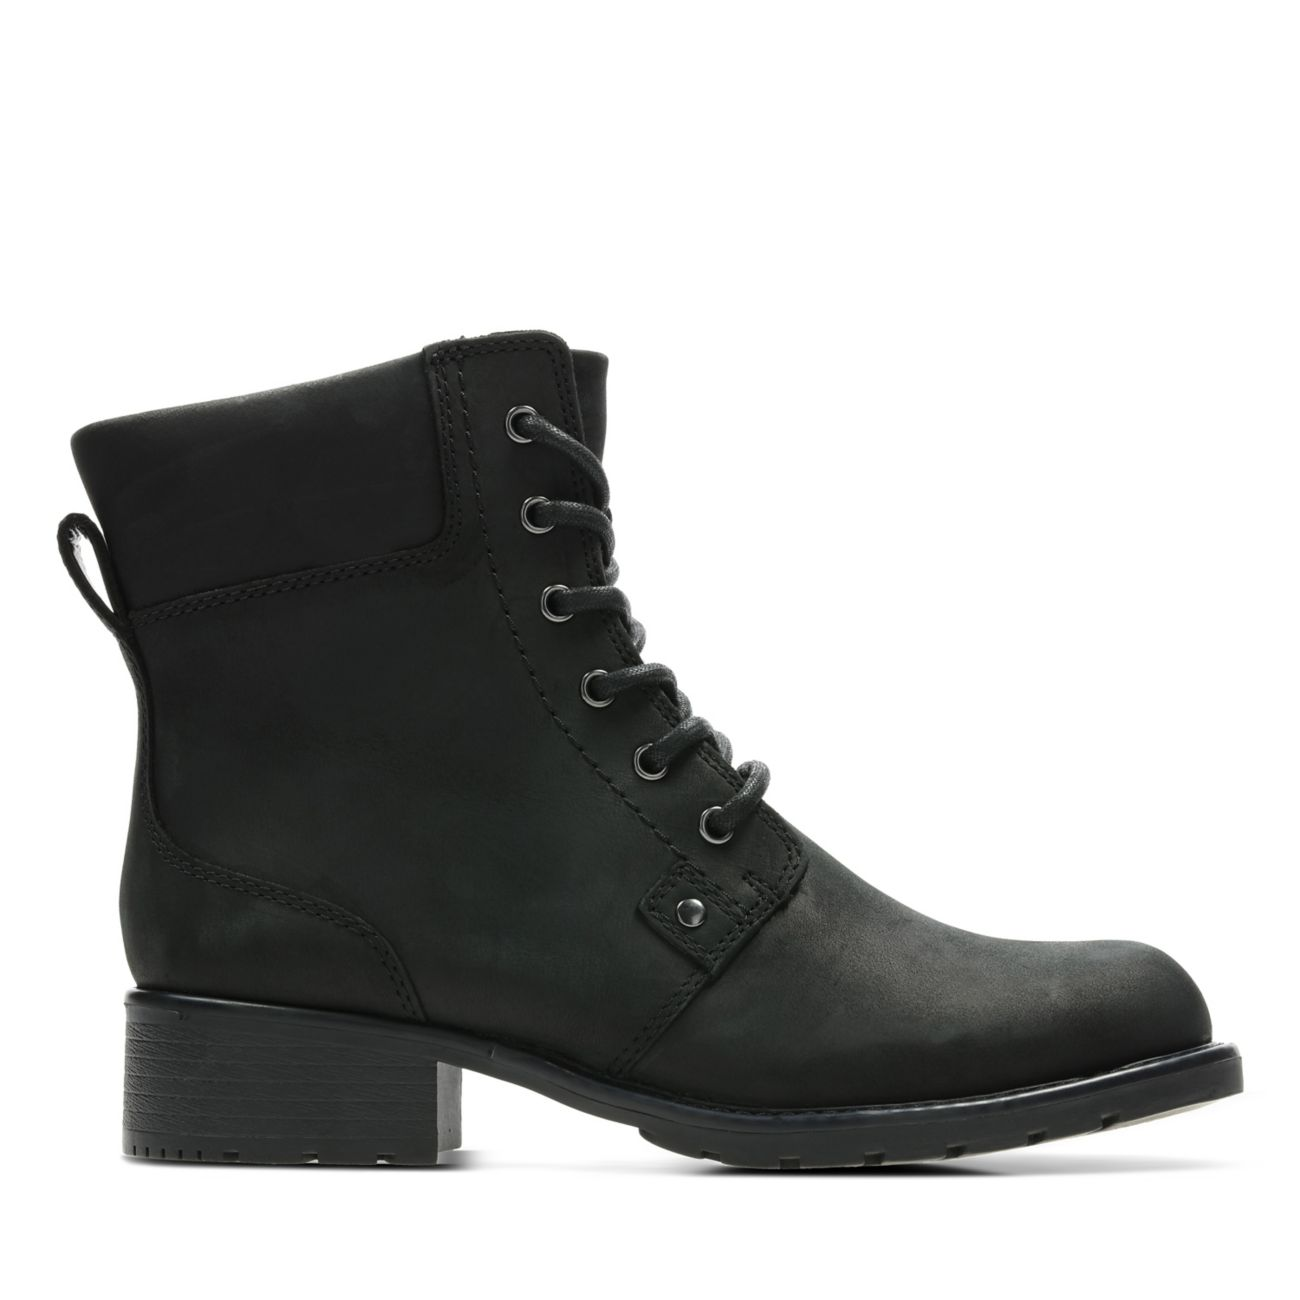 961c7f9431c Orinoco Spice Black Leather - Womens Comfortable Boots & Booties - Clarks® Shoes  Official Site   Clarks